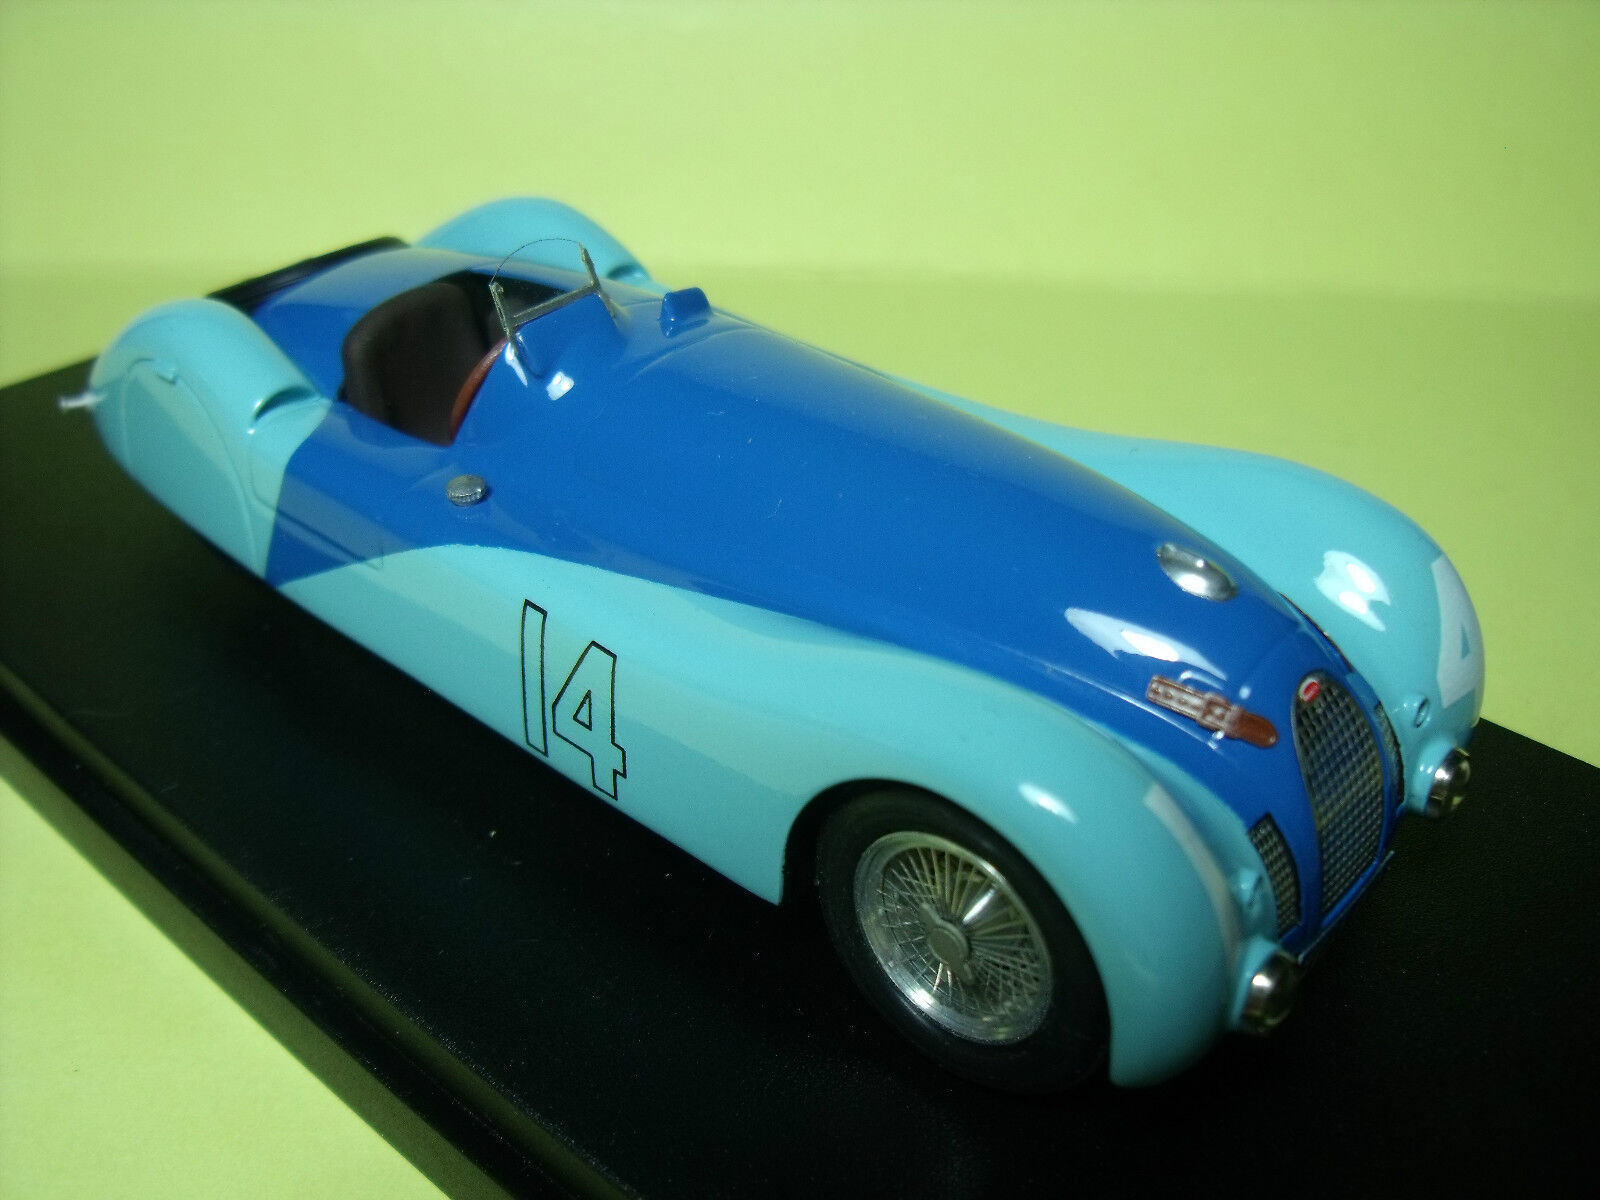 BUGATTI   57S 45  TANK   MONTHLERY  1937   VROOM   1 43  UNPAINTED  KIT